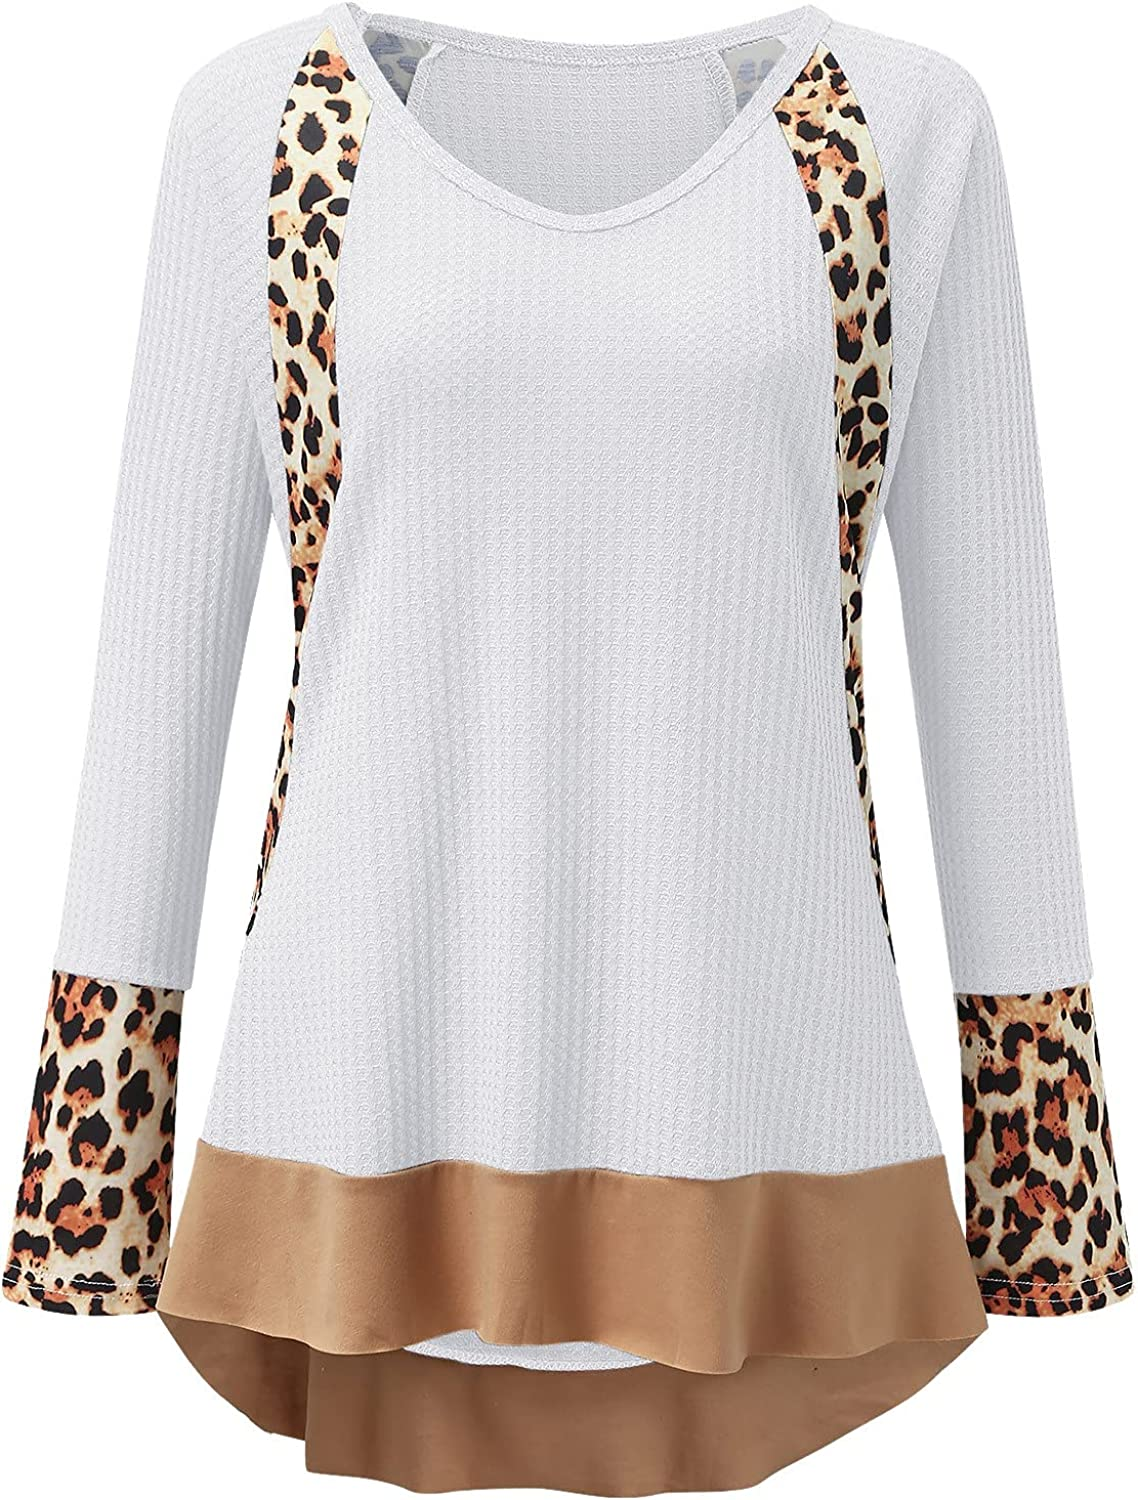 Womens Sweatshirt Oversized Casual Long Sleeve Lightweight Trendy Loose Leopard Graphic Pullover Top Shirt Tee